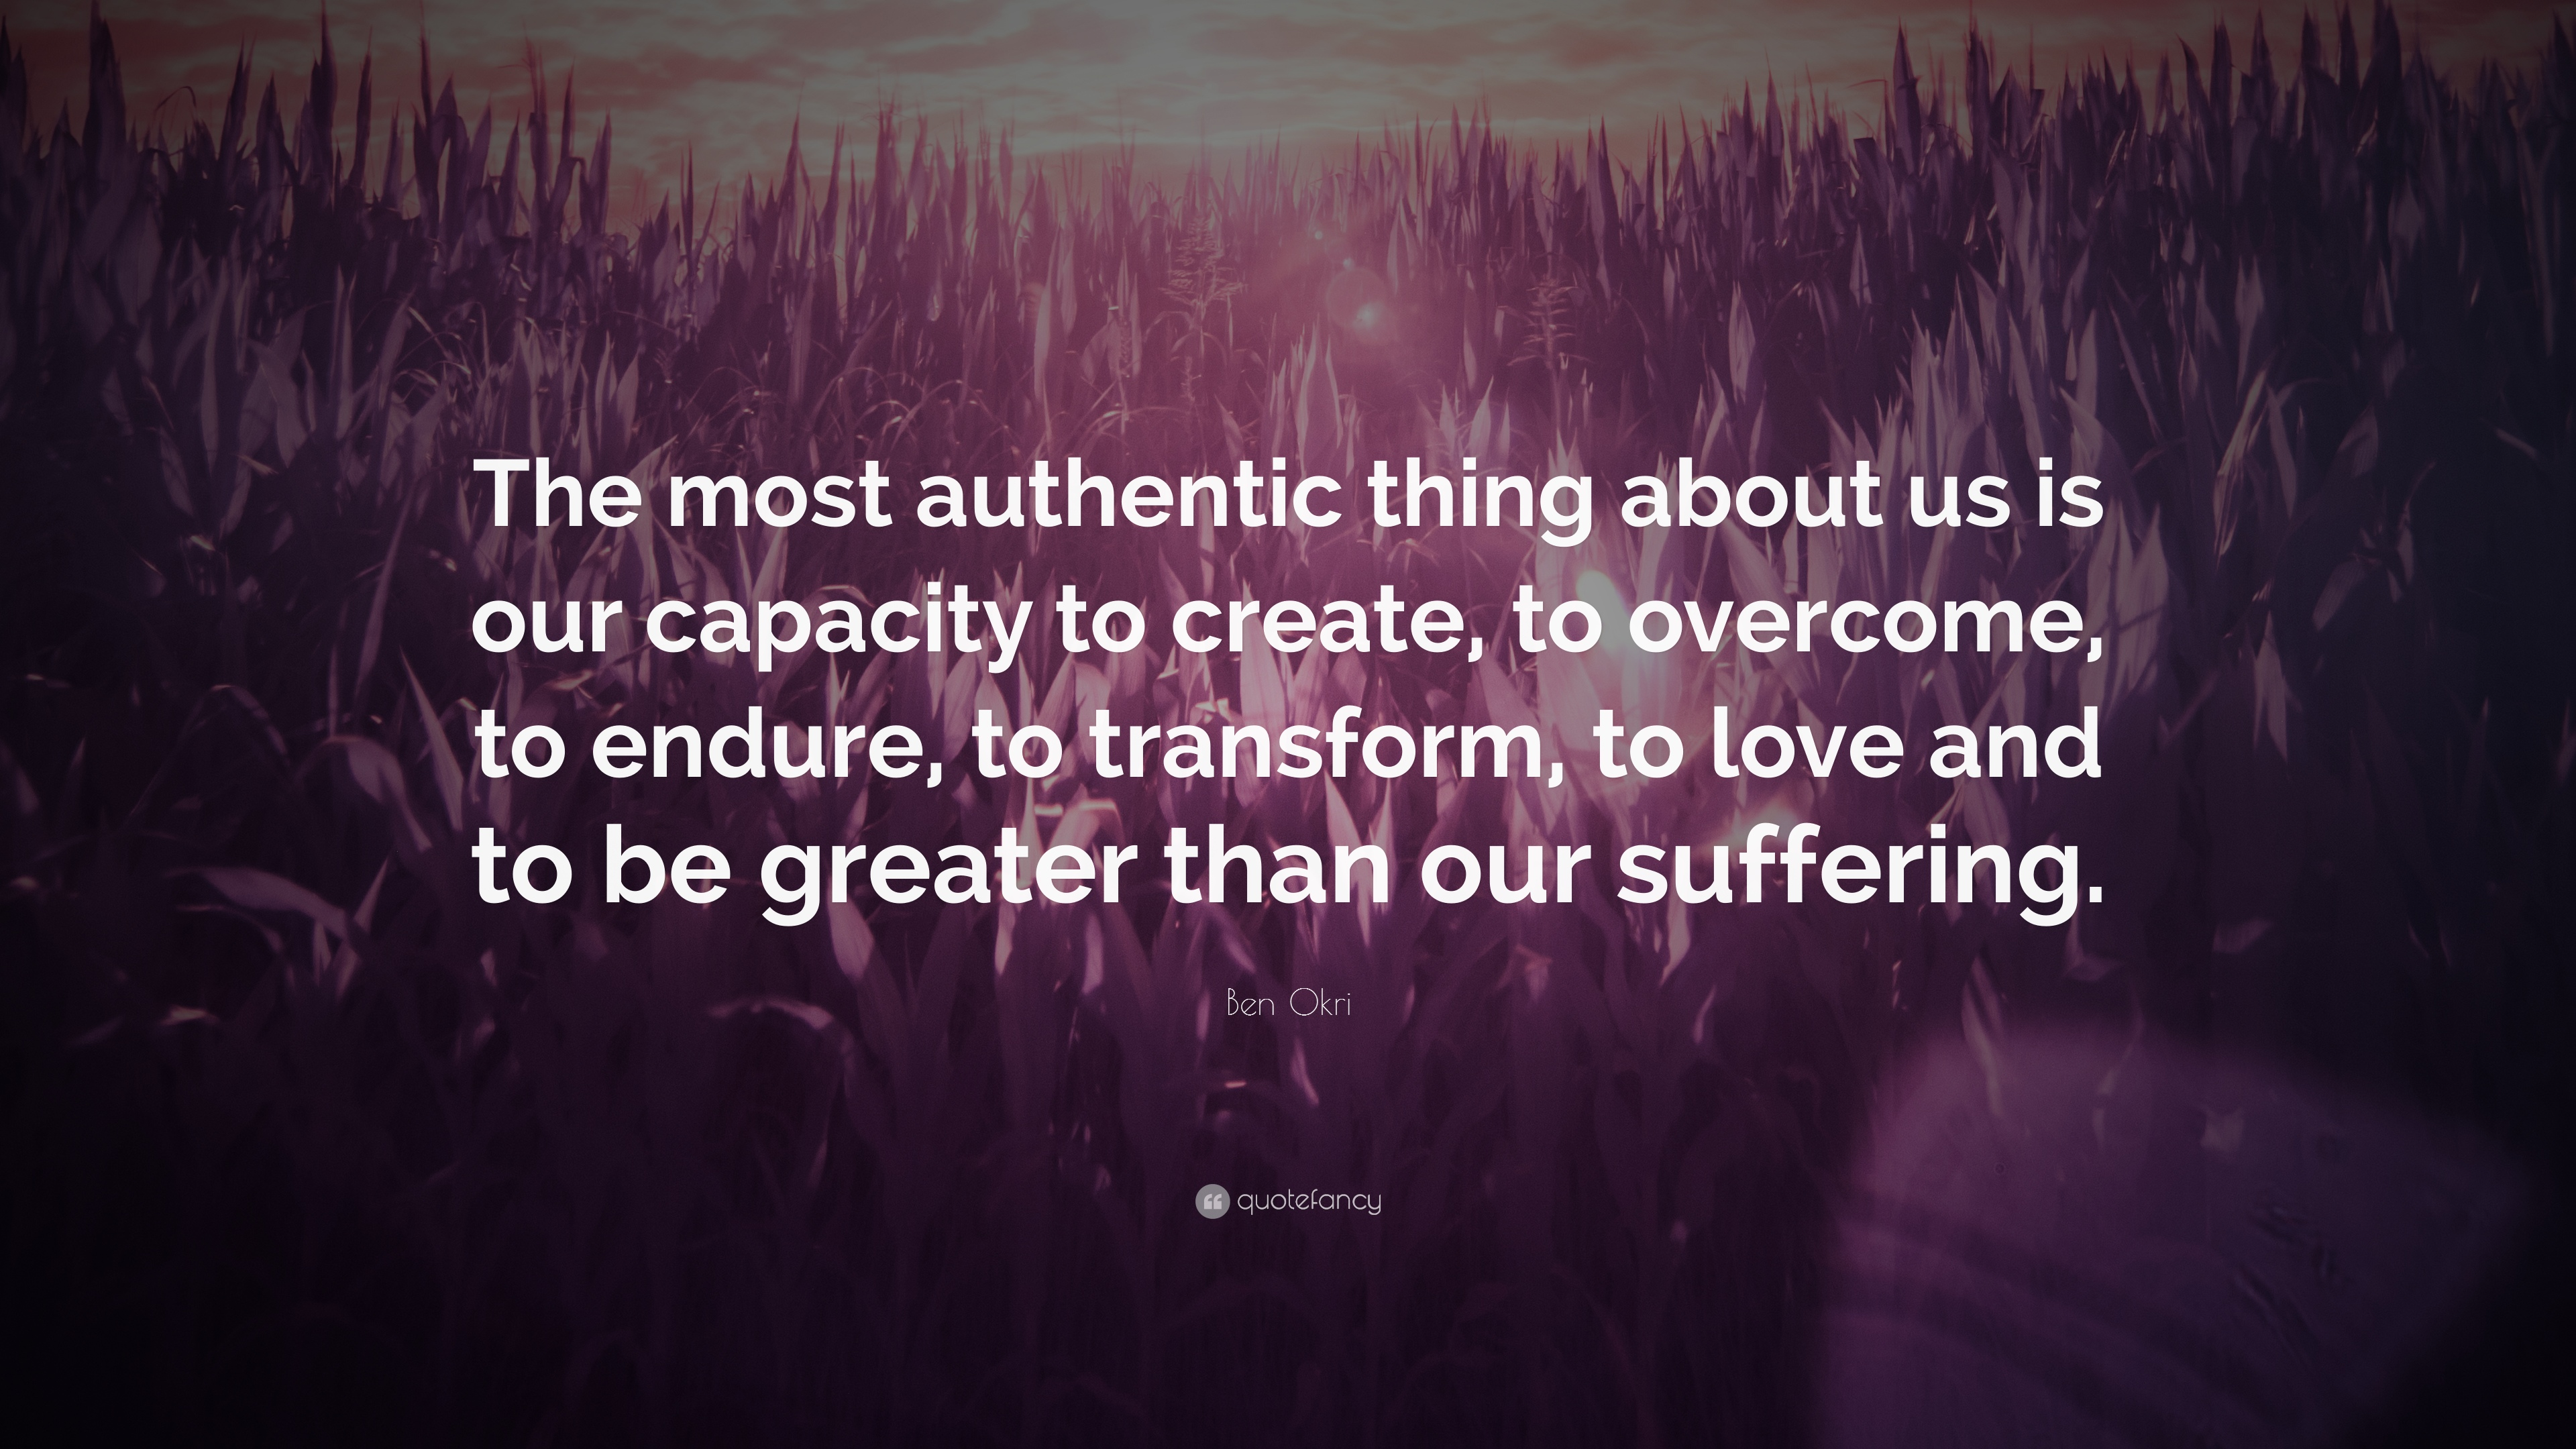 Exceptionnel Ben Okri Quote: U201cThe Most Authentic Thing About Us Is Our Capacity To Create